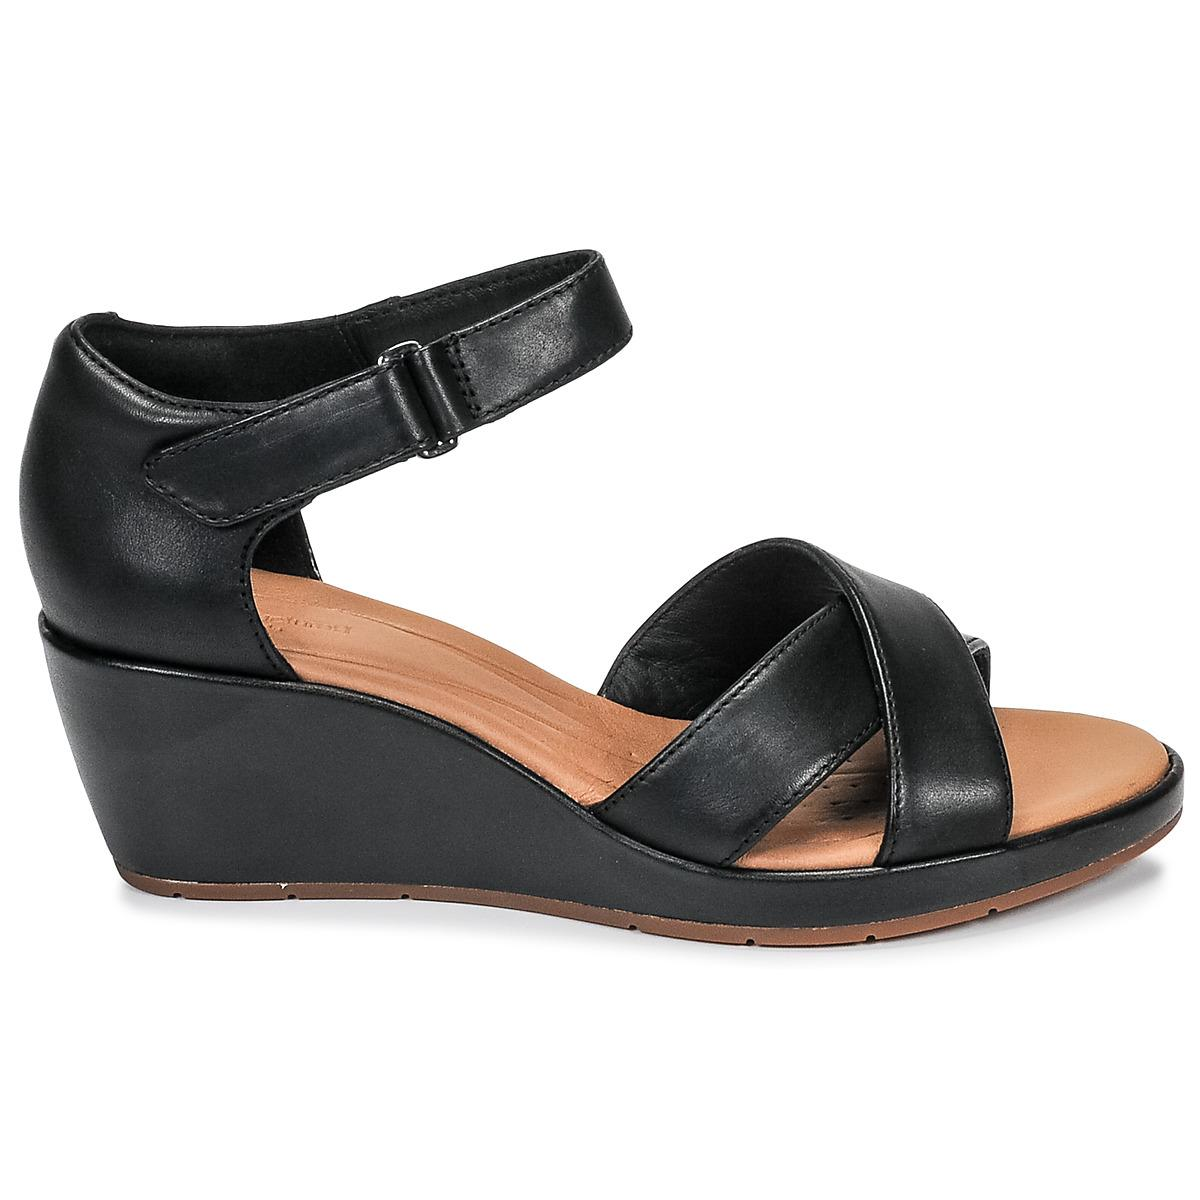 6a8383a19557 Clarks - Black Un Plaza Cross Sandals - Lyst. View fullscreen